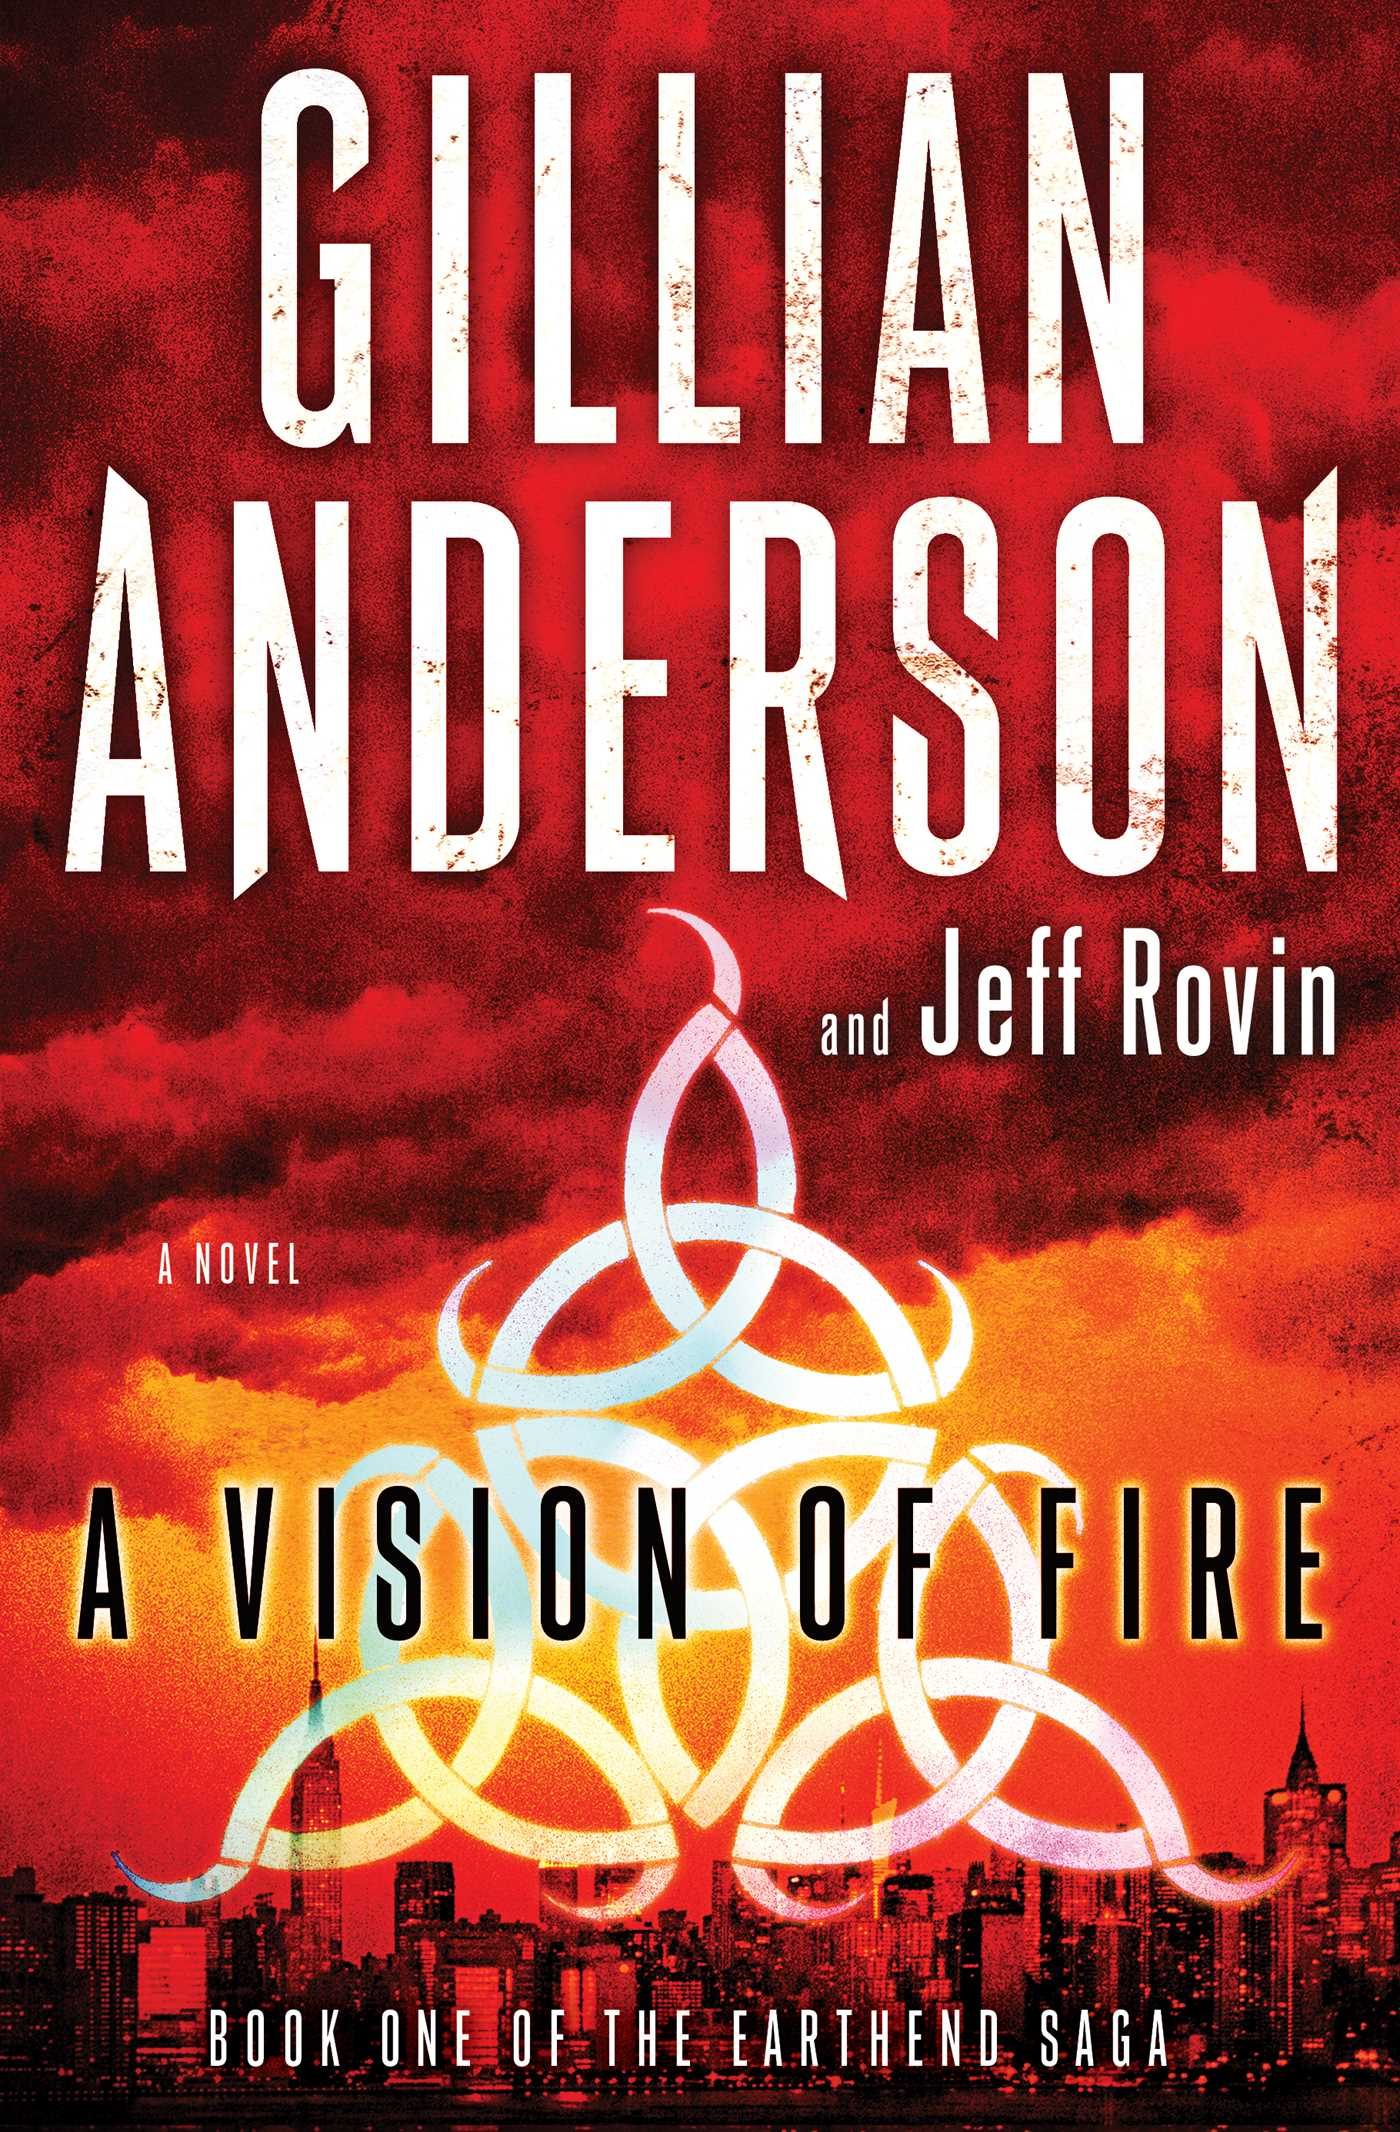 Gillian Anderson vision of fire